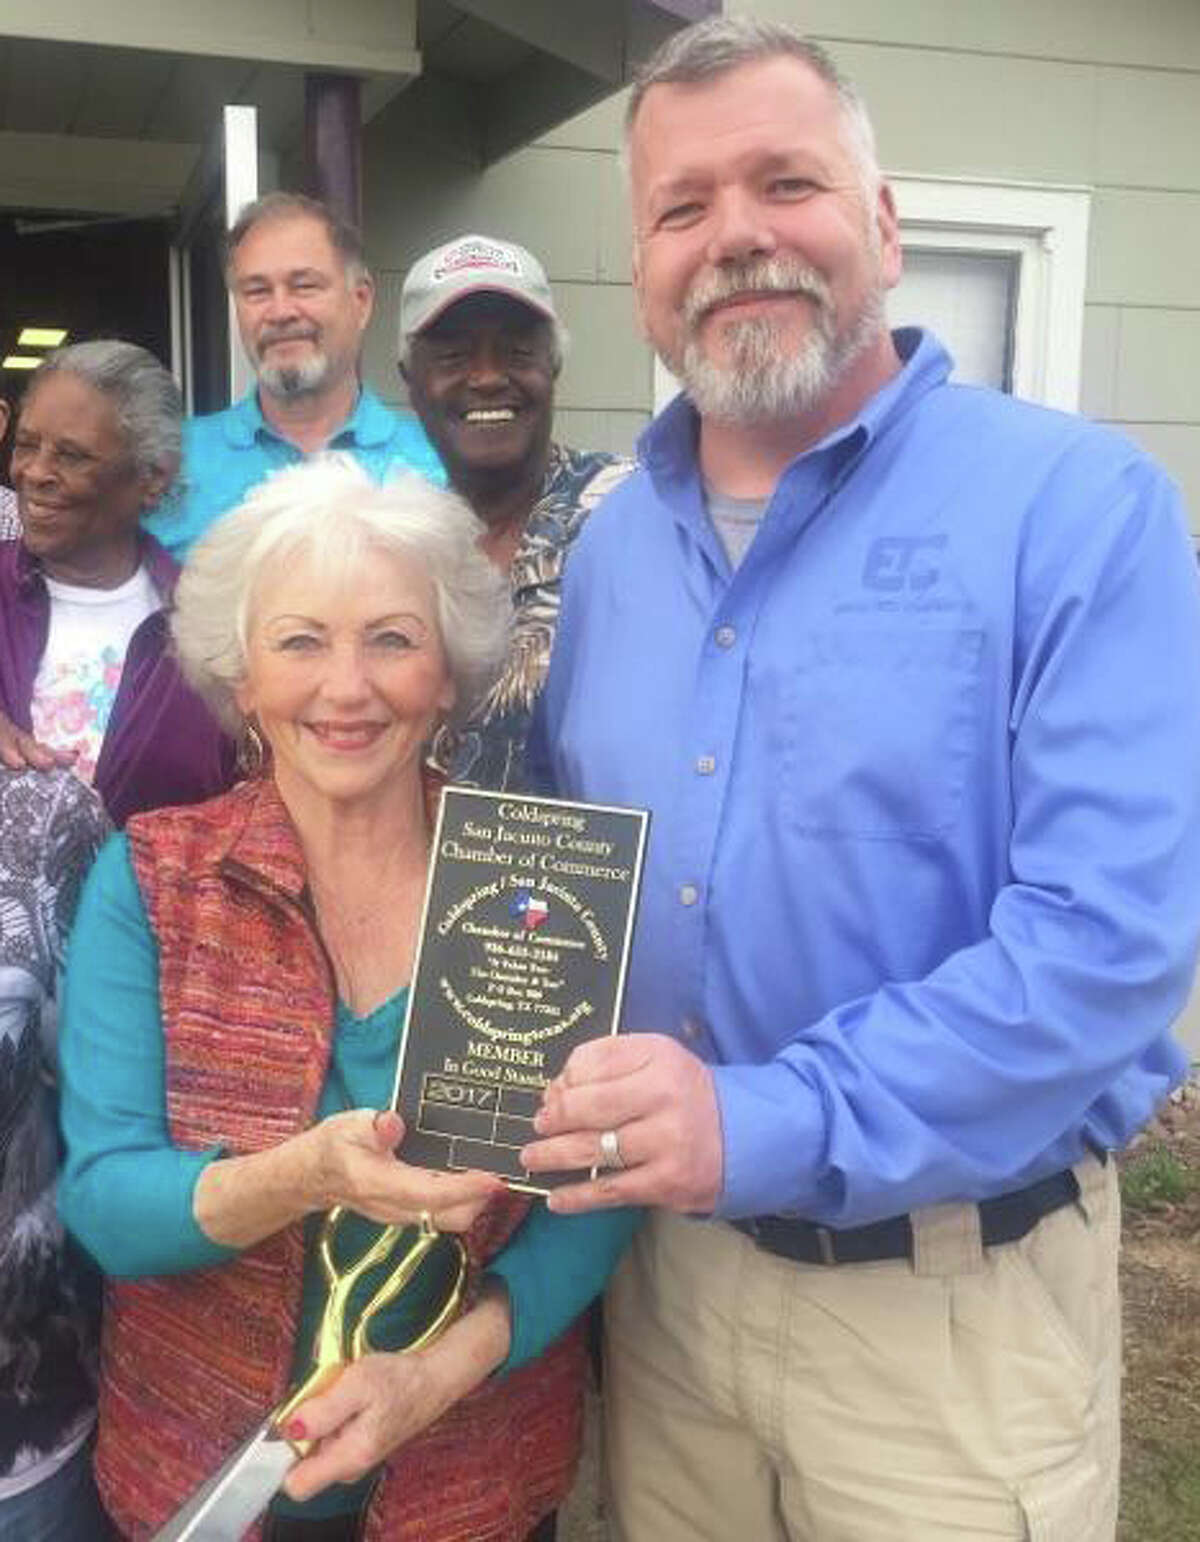 Coldspring/San Jacinto County Chamber of Commerce President Pat Clark (right) presents a plaque to commemorate the welcoming of the San Jacinto County Democratic Party to its Vice President Cora Tullar (left).